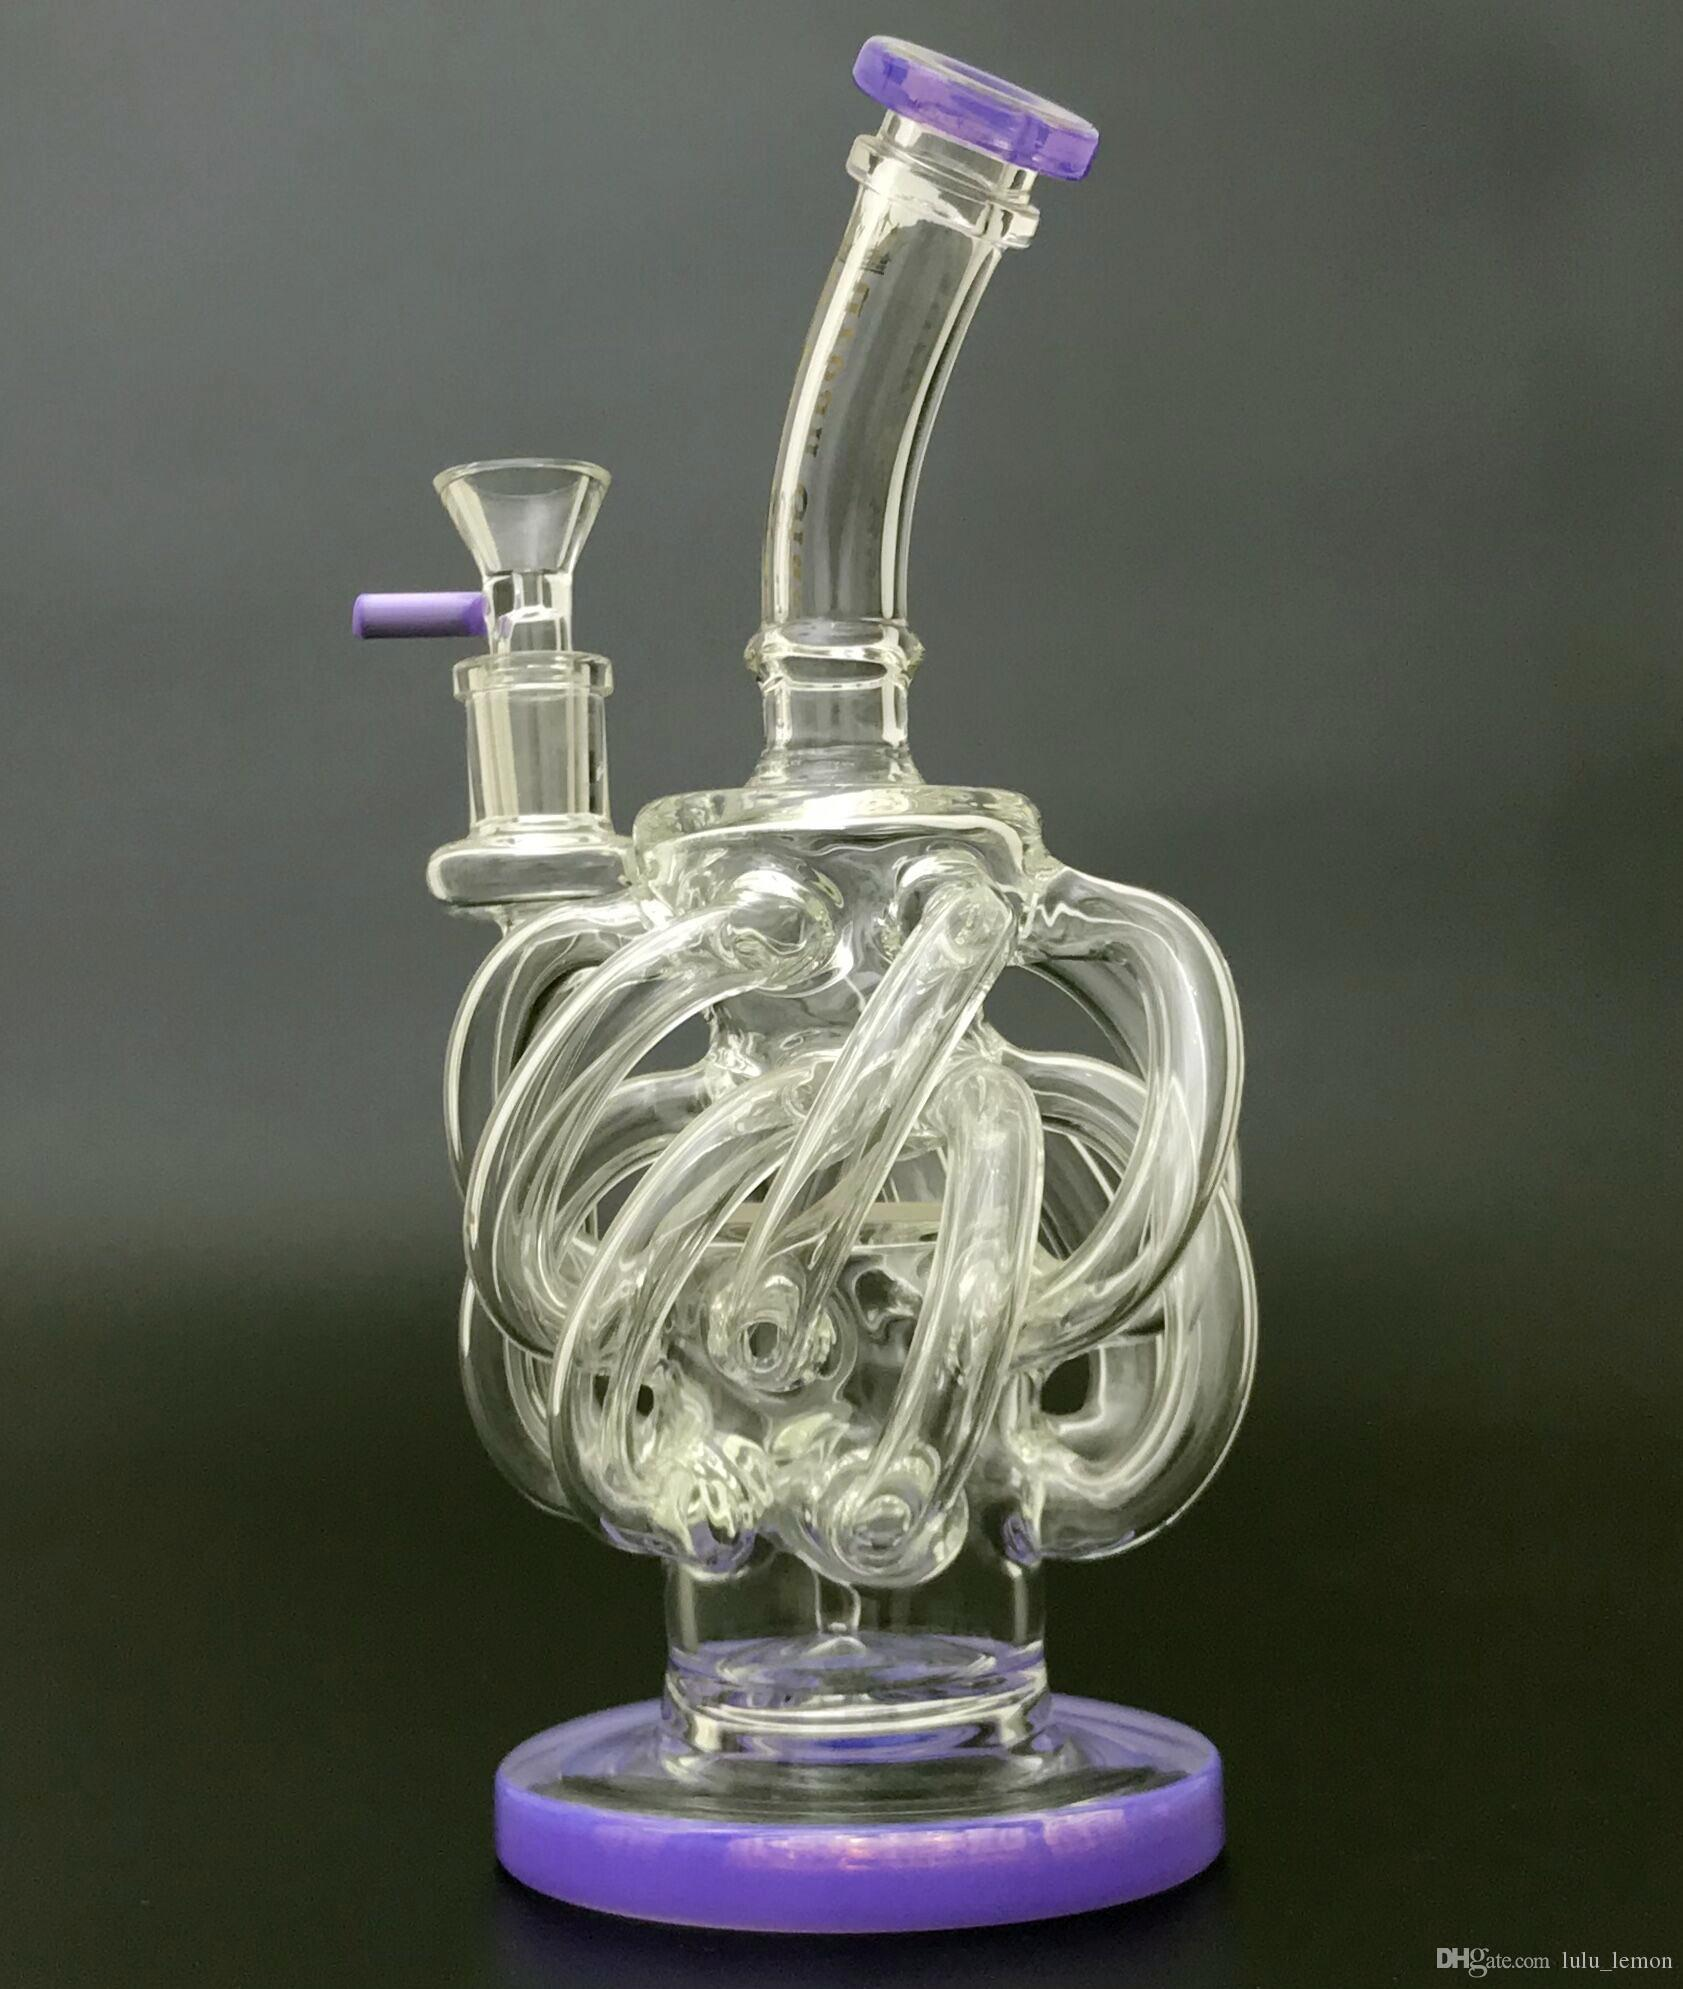 Super Vortex Glass Bongs 12 Recycler Tube Bong Cyclone Oil Dab Rigs 14mm Joint Water Pipes Verdancy Purple Glass Bongs With Heady Bowl